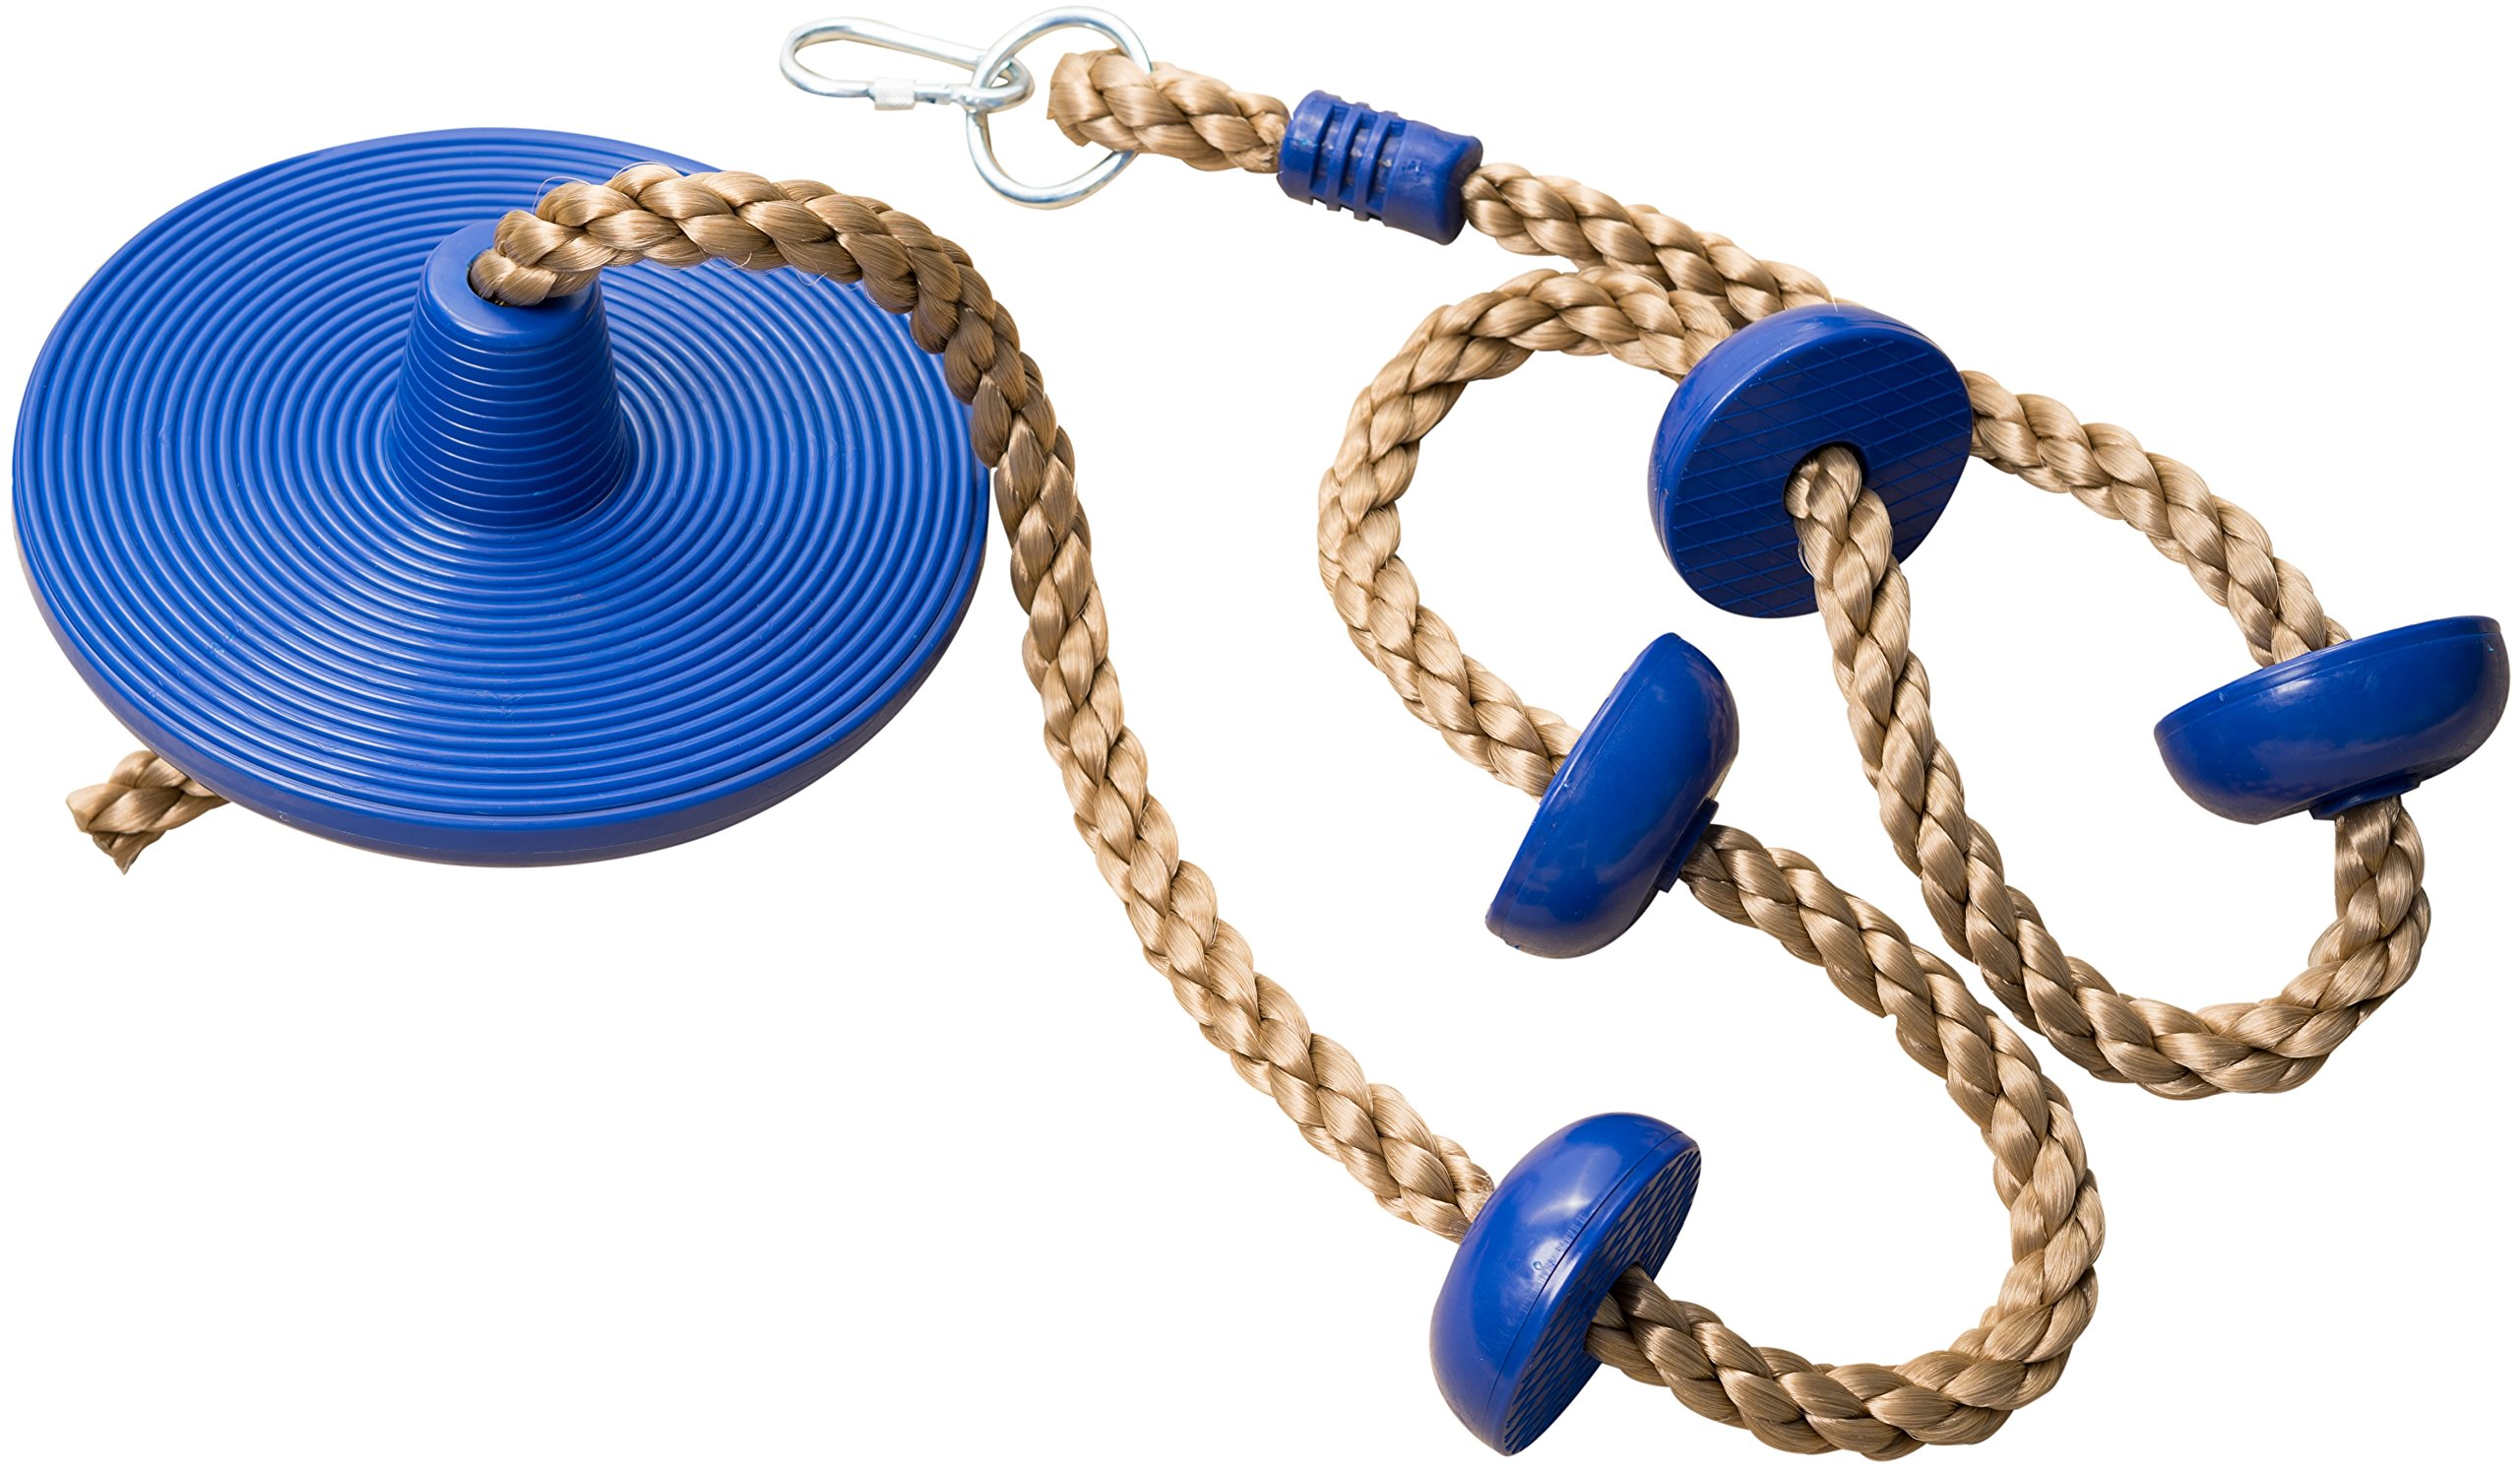 Jungle Gym Kingdom Climbing Rope with Platforms and Disc Swing Seat Blue - Swing Set Accessories